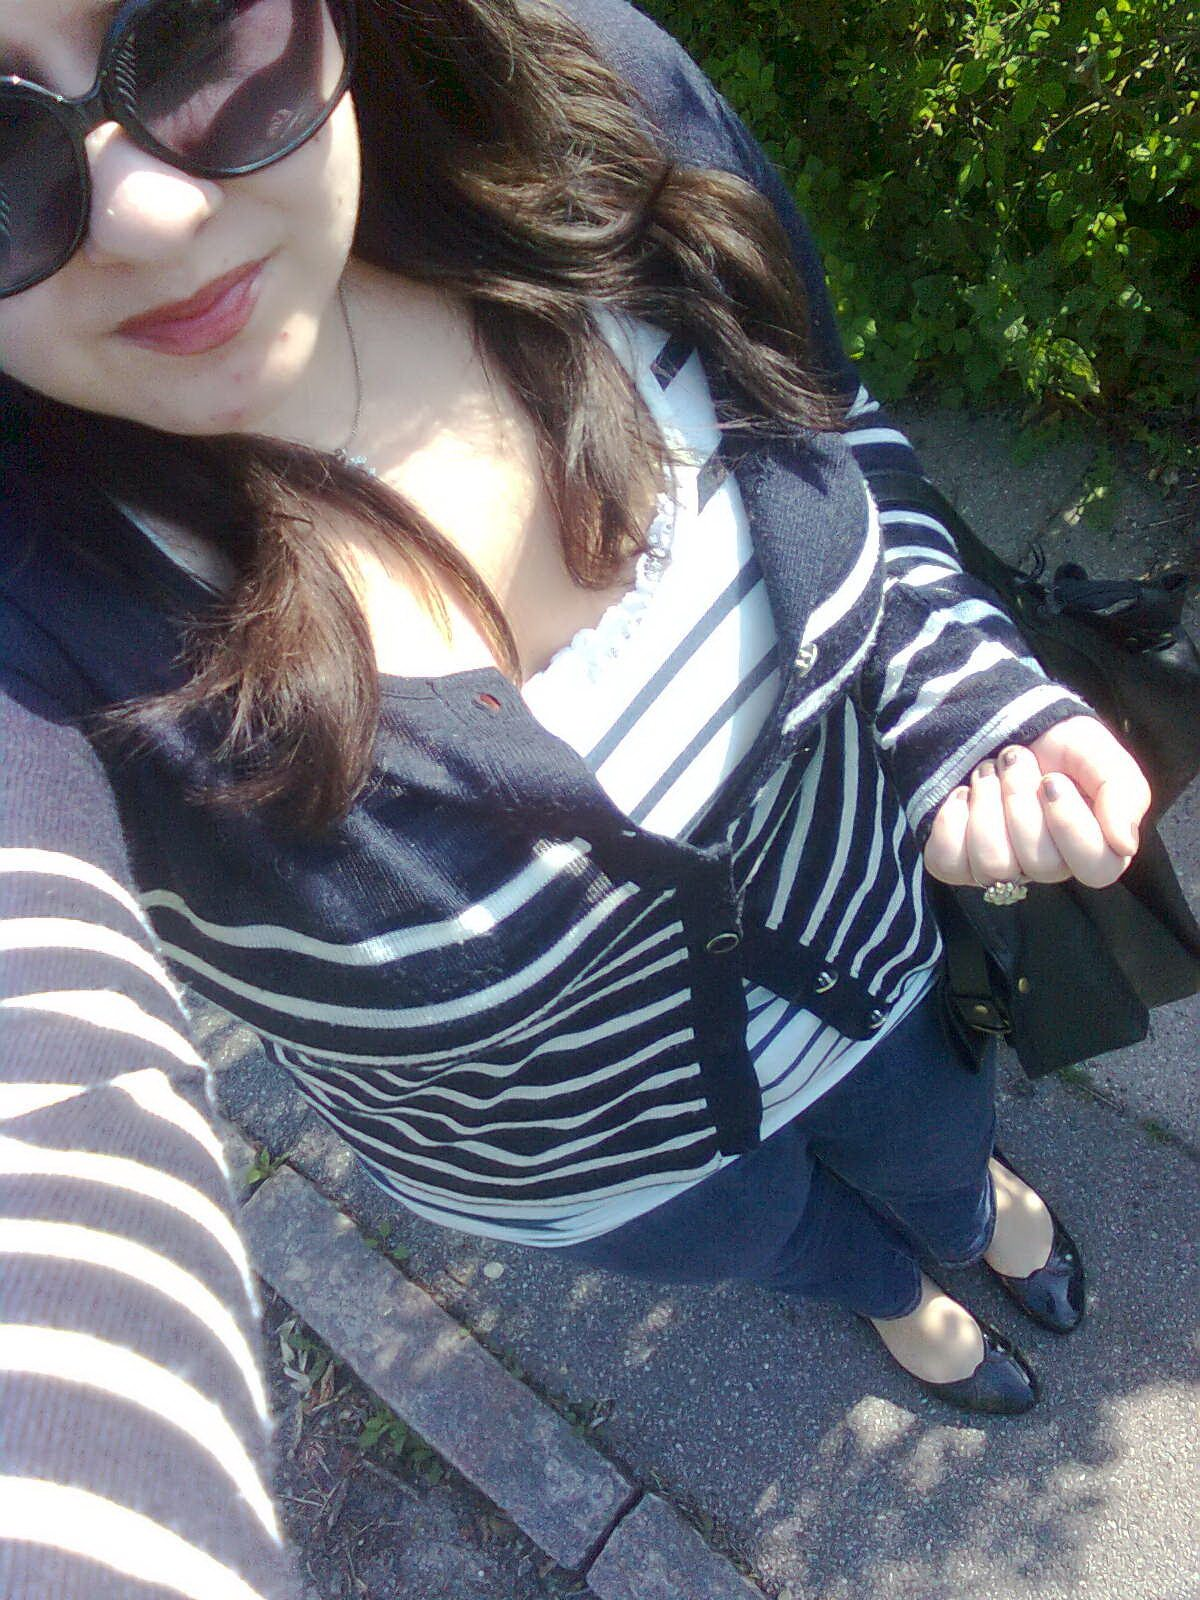 Selfie of me wearing striped shirts and jeans